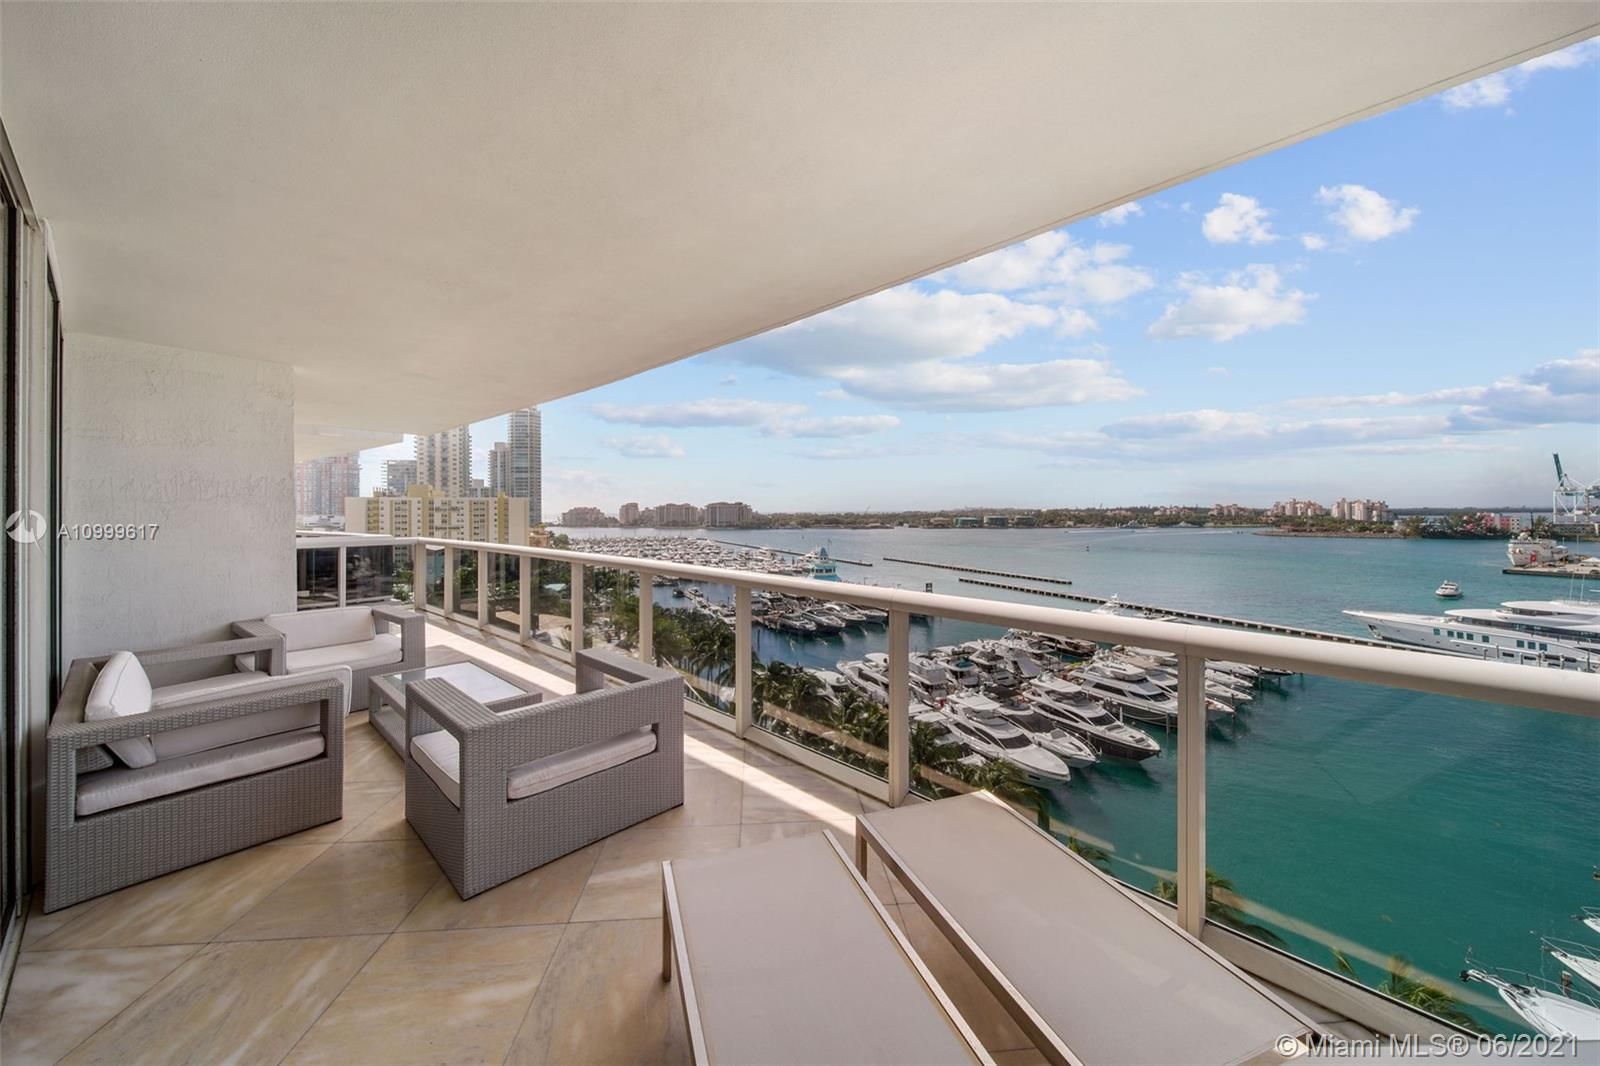 The bay views from this sprawling 3058 sq. ft. residence are second to none.  The building is among the highest rated condominiums in Miami and the location is in the highly coveted South of Fifth neighborhood in Miami Beach.  This beautiful home on the 10th floor of the luxurious Murano Grande enjoys stunning large format calacatta marble slabs throughout that accentuate the blue green turquoise waters of Biscayne Bay. Be sure to see the video for a walk through tour of this gorgeous residence.